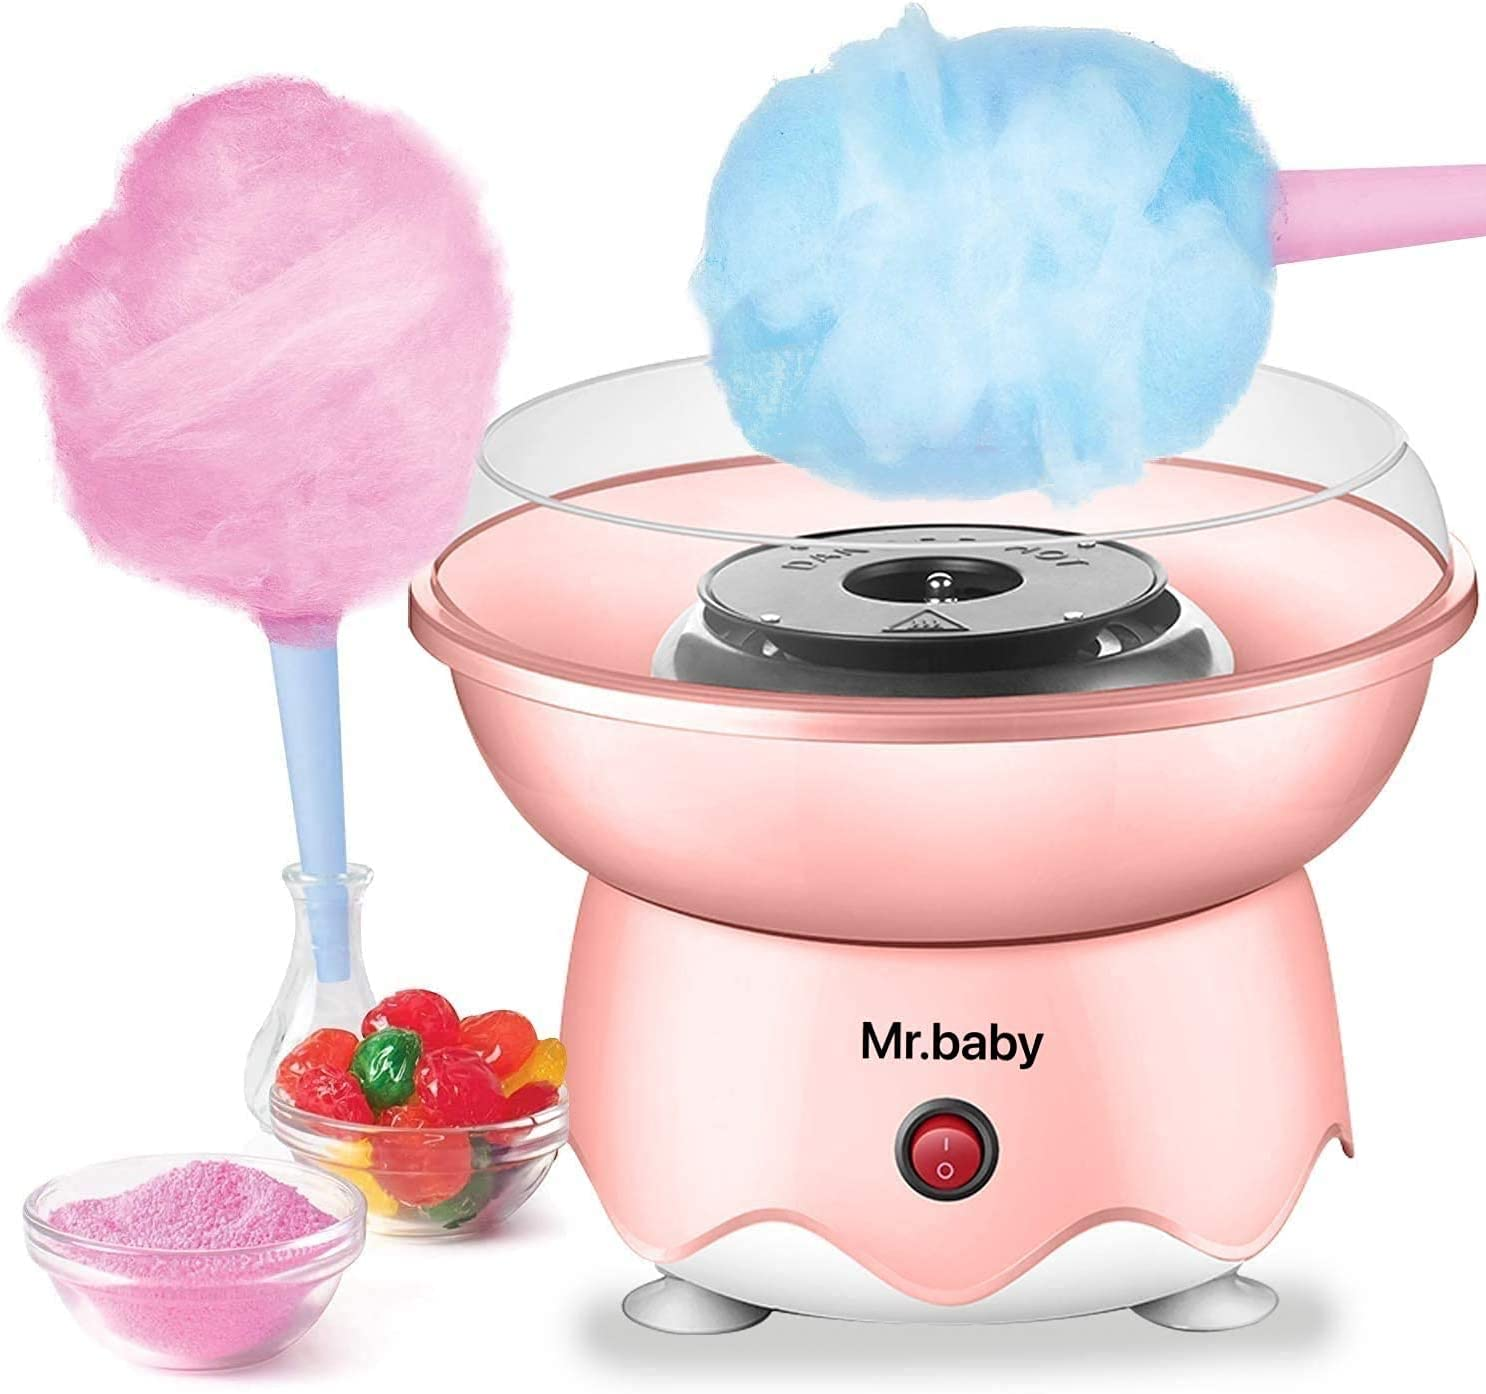 Cotton Candy Maker, Cotton Candy Machine for Home Birthday Family Party Christmas Gift - Includes 10 Cones And Sugar Scoop